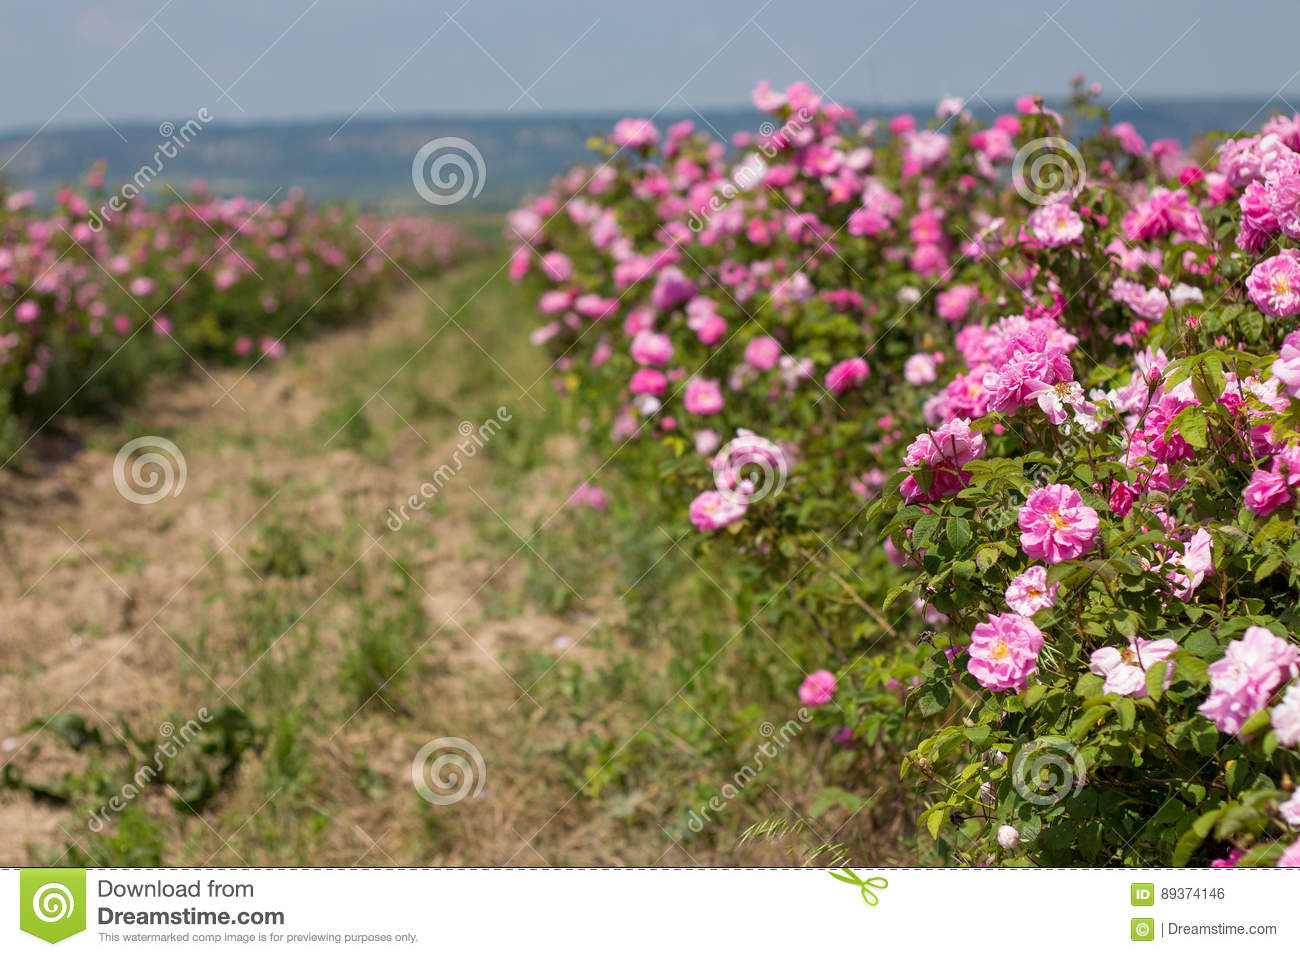 Roses In Garden: Beautiful Bush Of Pink Roses In A Spring Garden. Flower